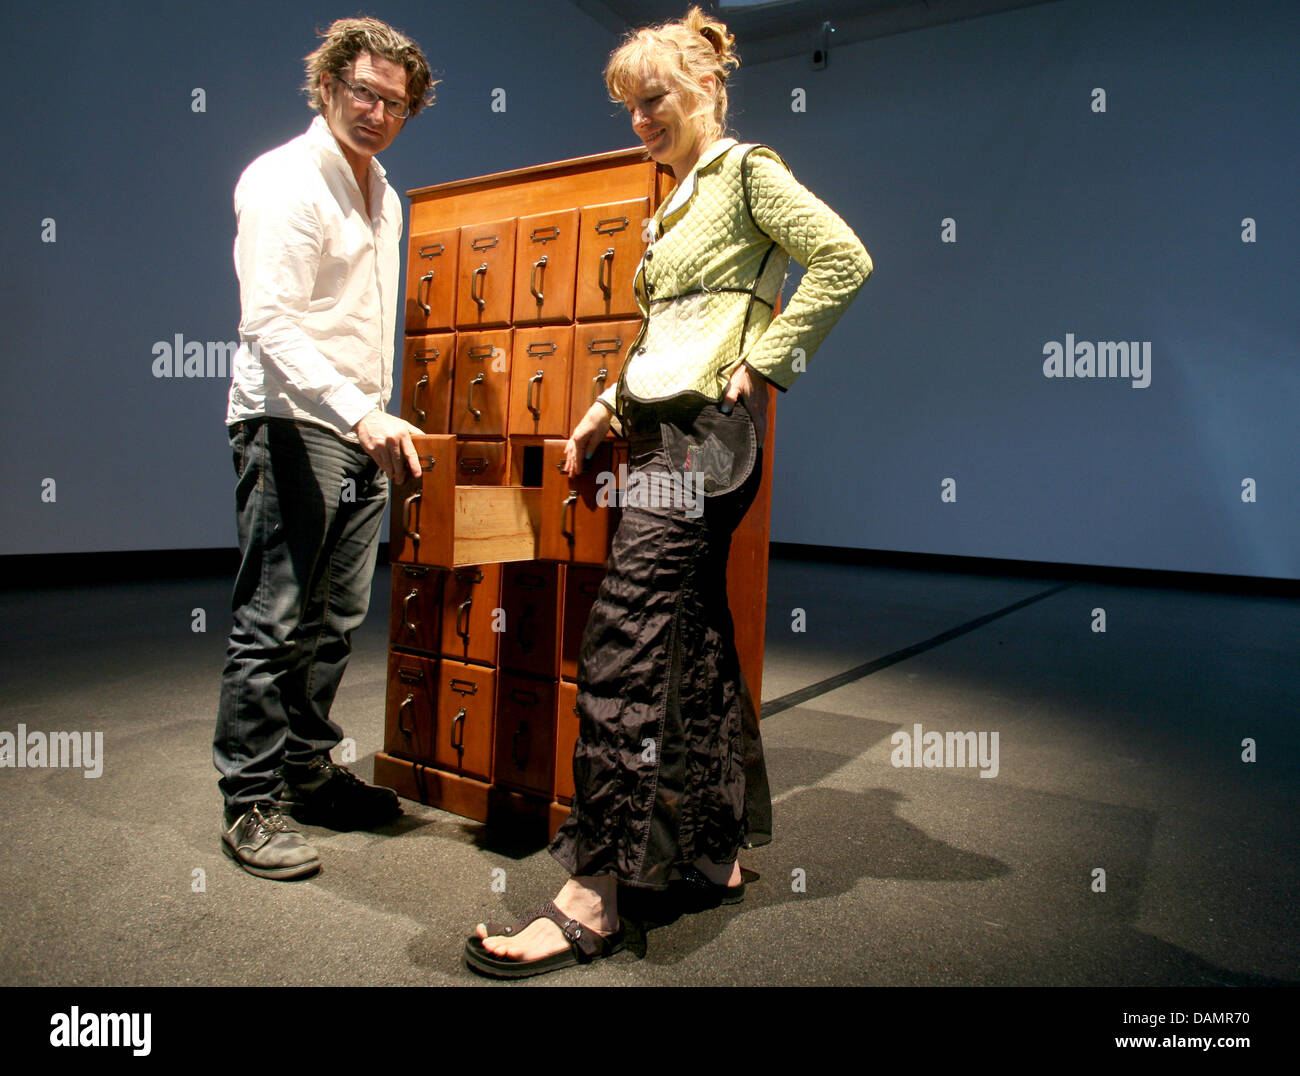 Canadian artists George Bures Miller and Janet Cardiff stand next to their work 'Cabinet of Curiousness' - Stock Image